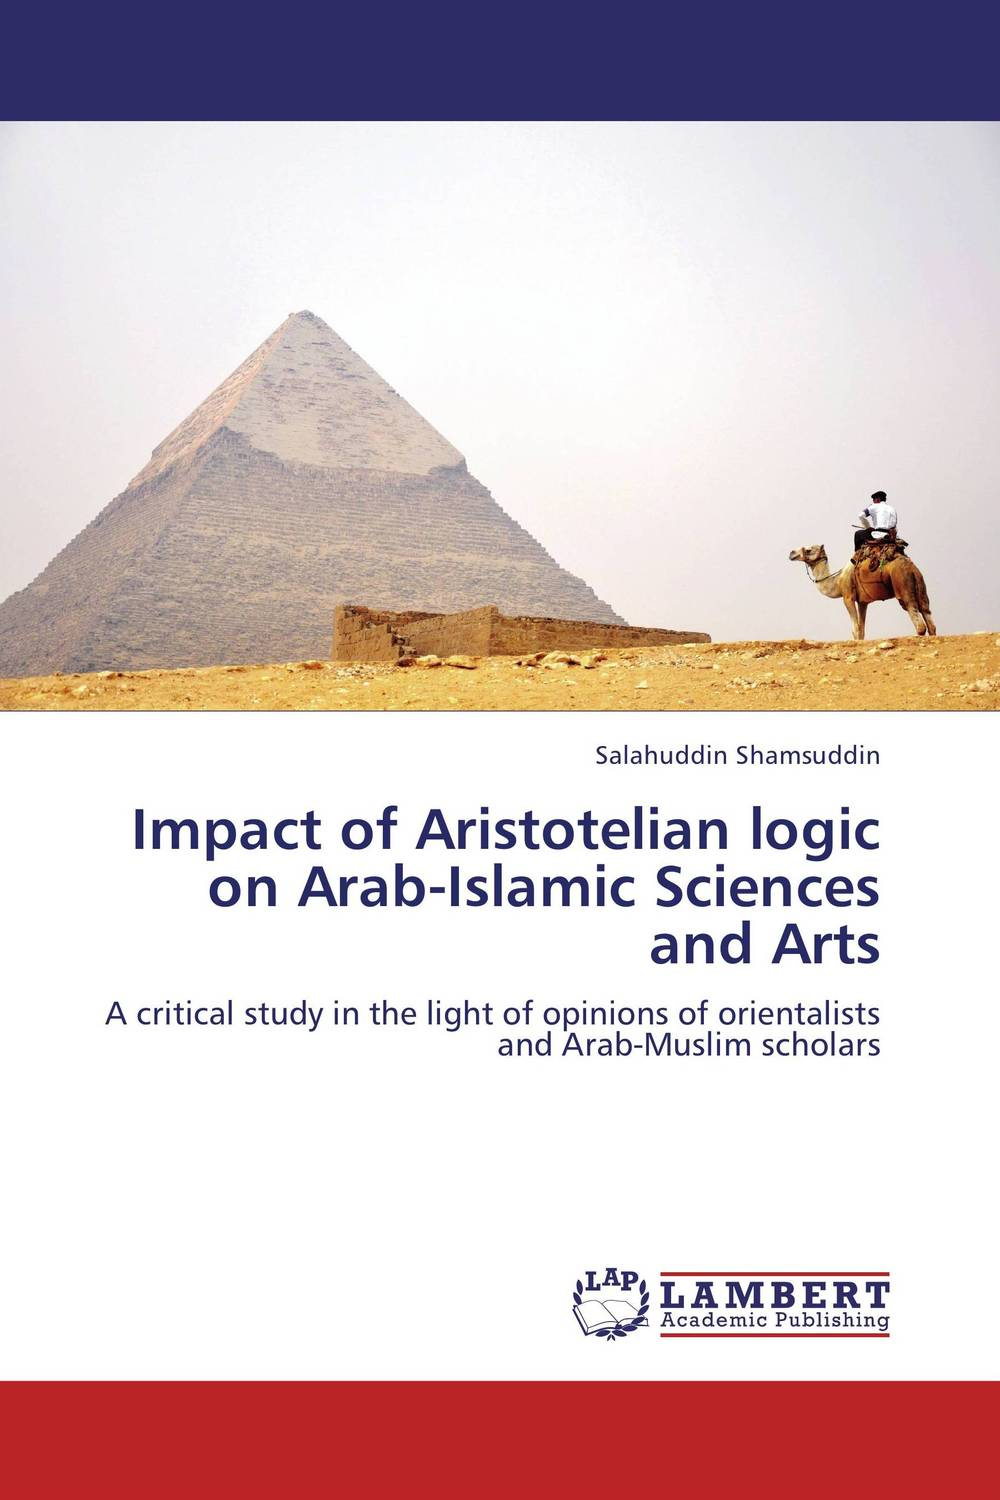 Impact of Aristotelian logic on Arab-Islamic Sciences and Arts on the logic of the social sciences paper